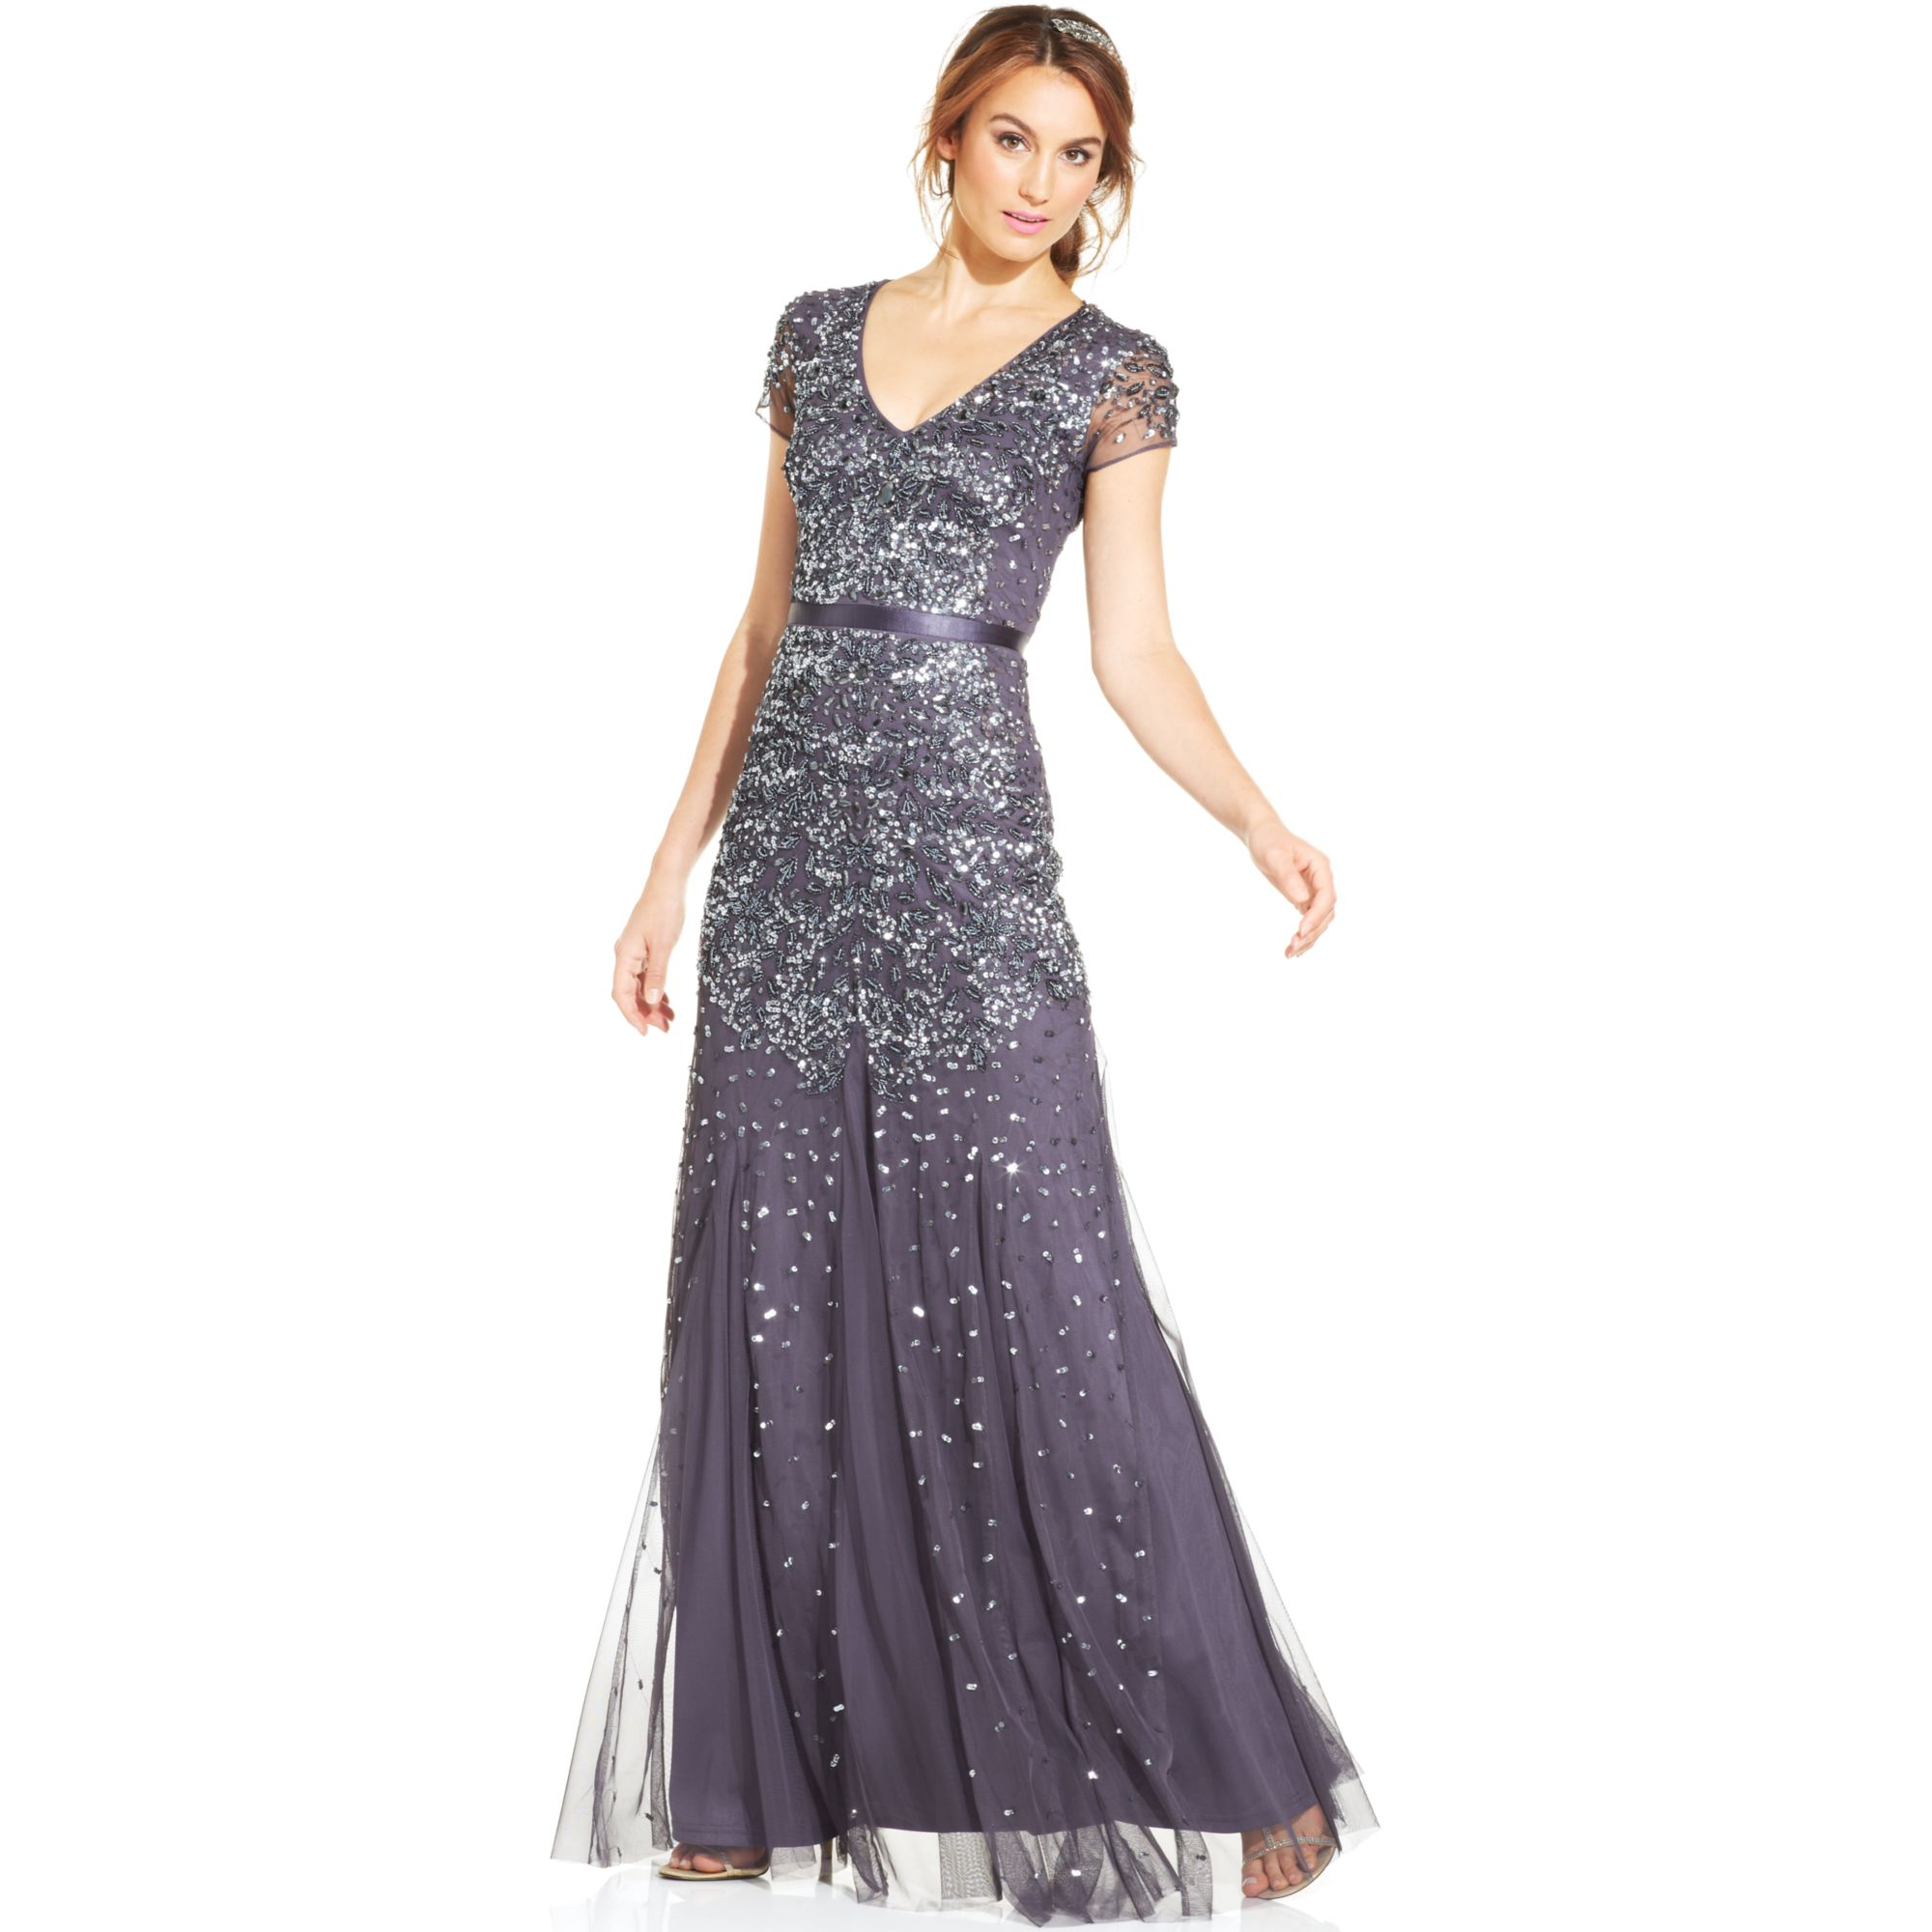 Lyst - Adrianna Papell Cap-sleeve Embellished Gown in Blue